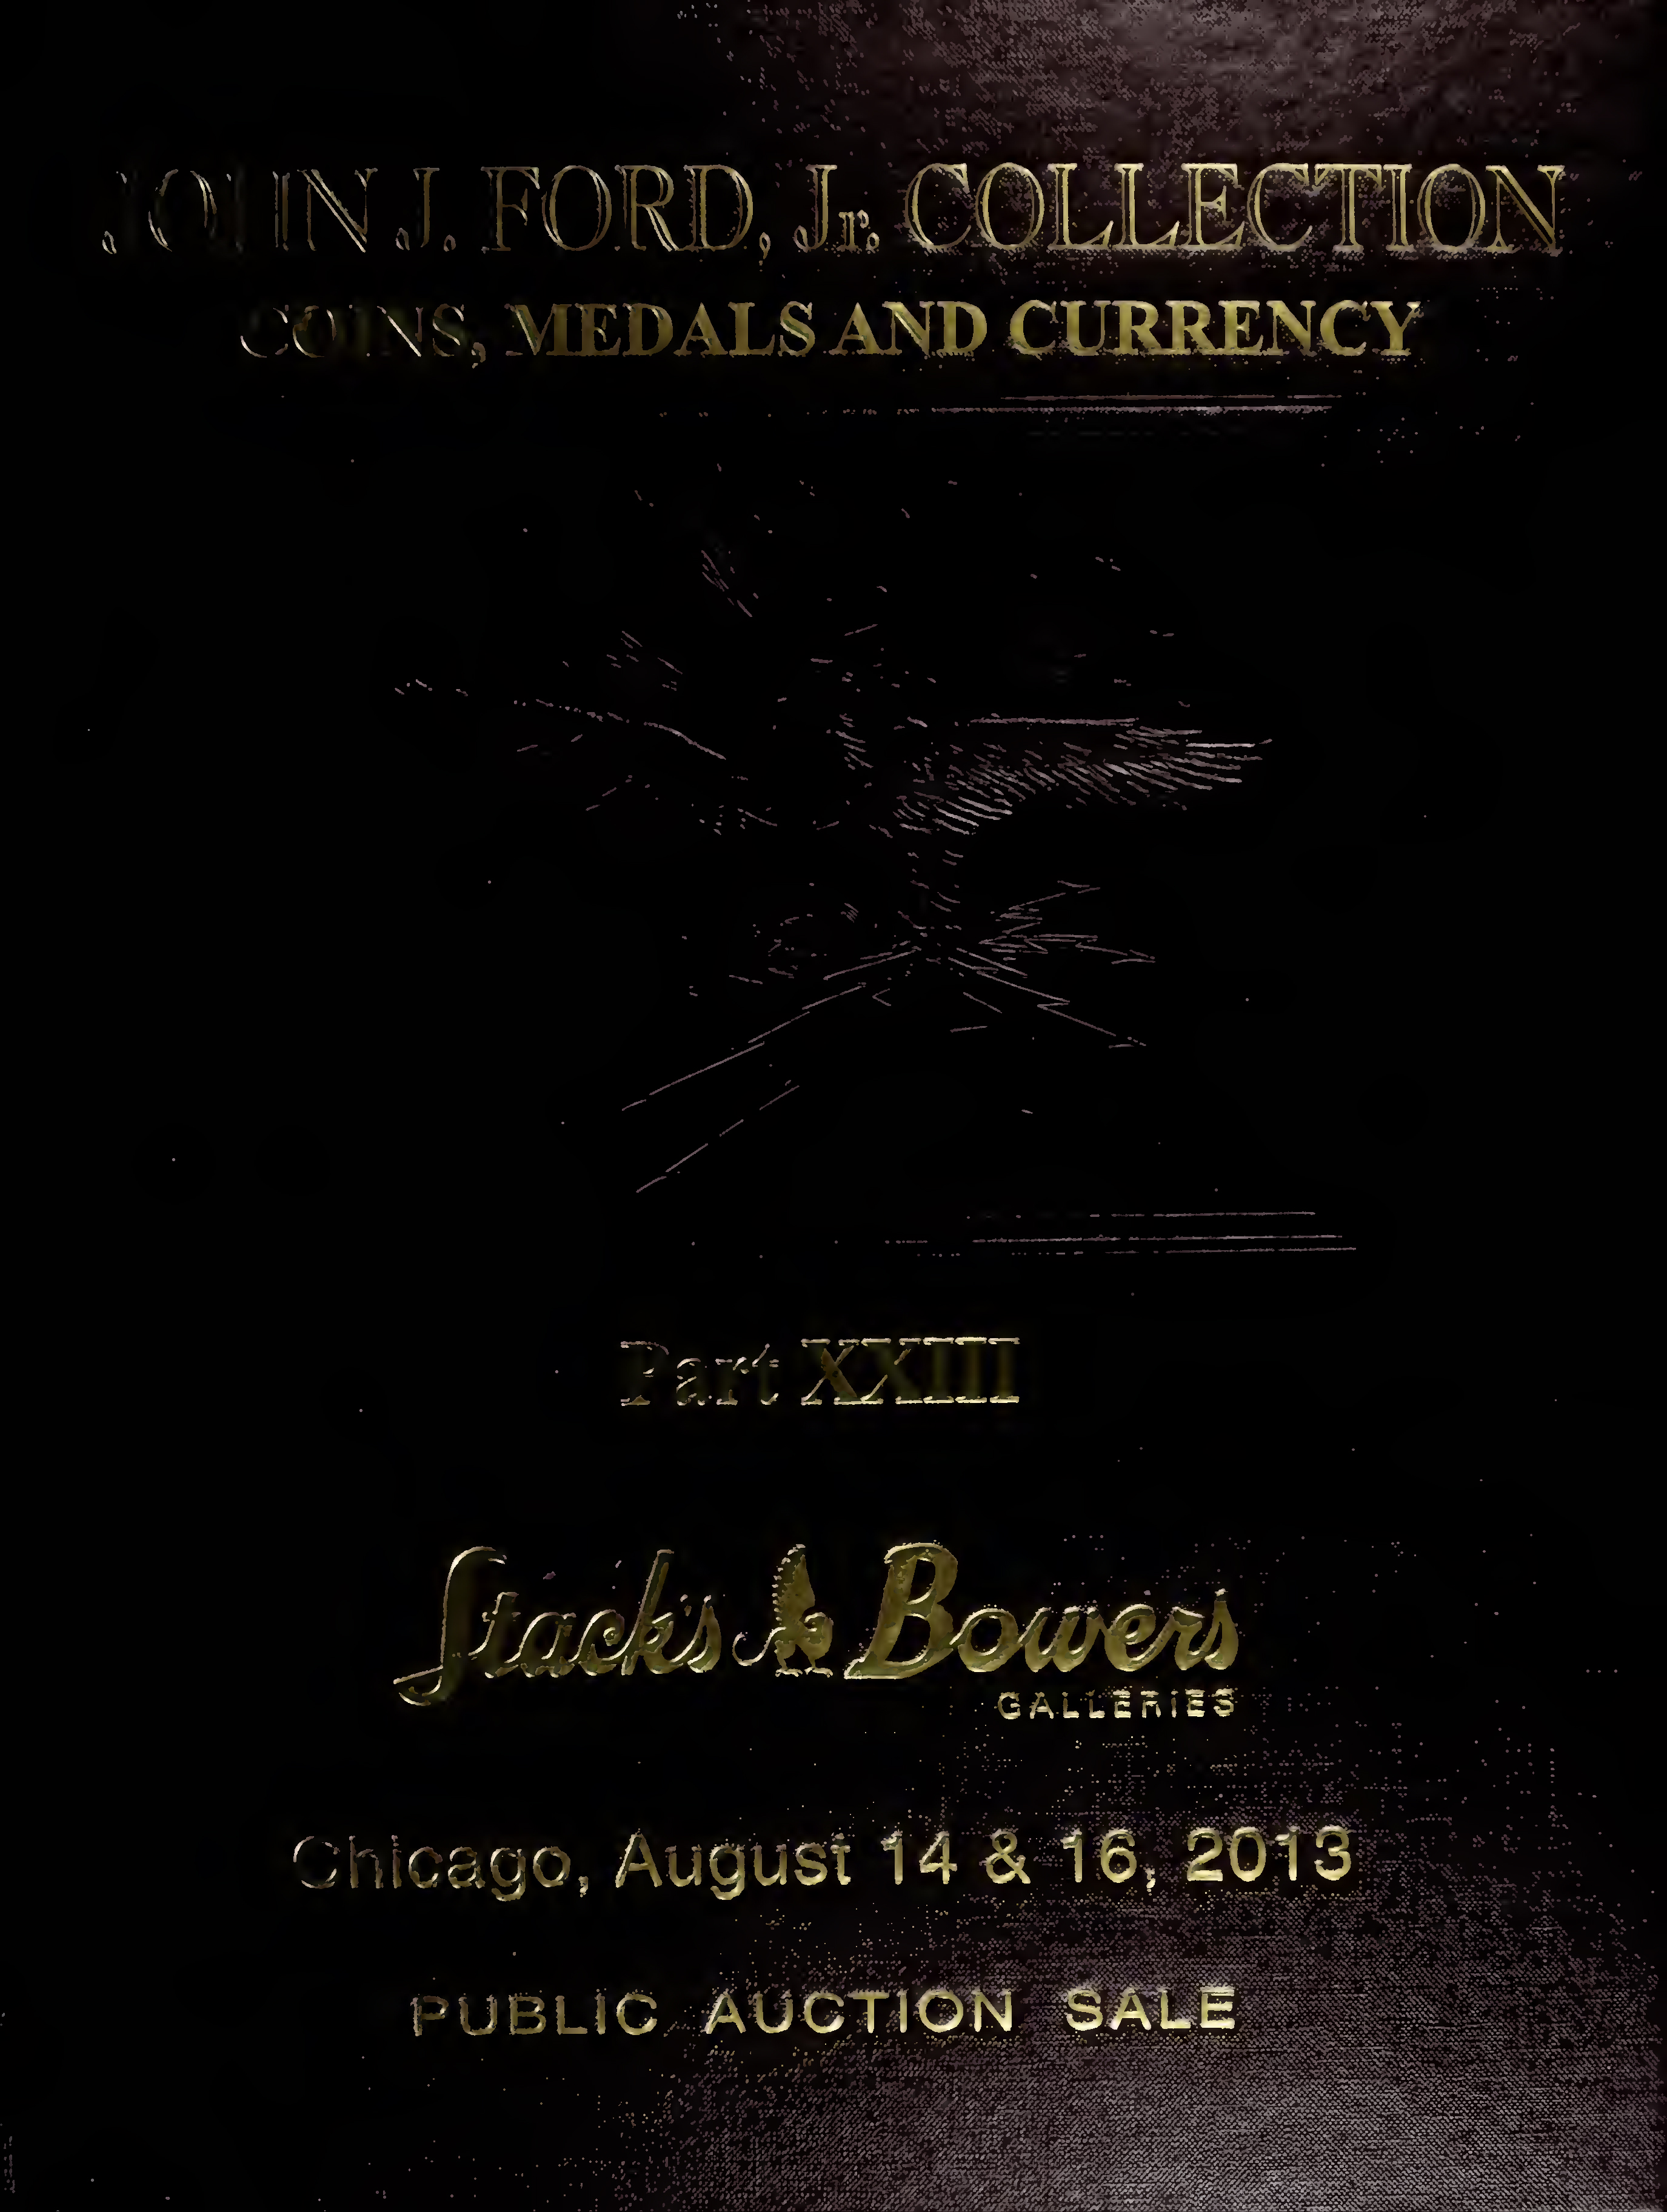 John J. Ford, Jr. Collection Coins, Medals and Currency Part XXIII